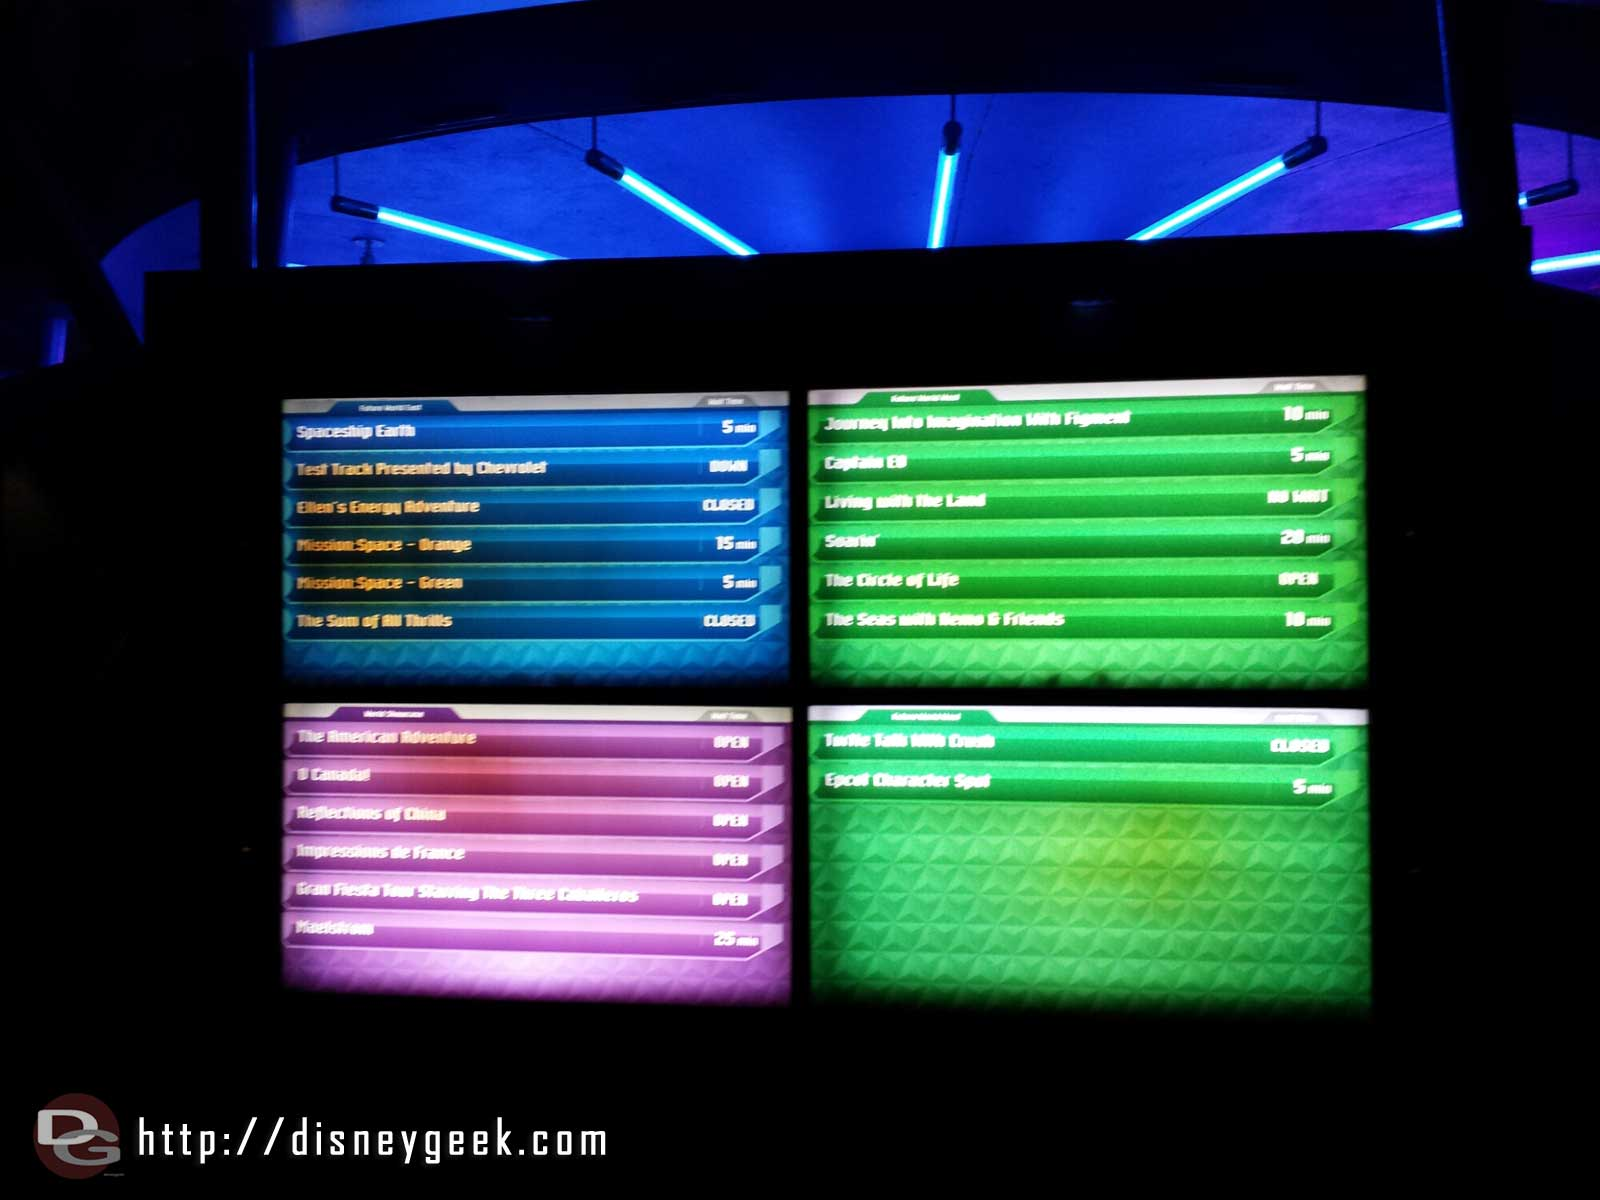 Epcot wait times as of 8:45pm